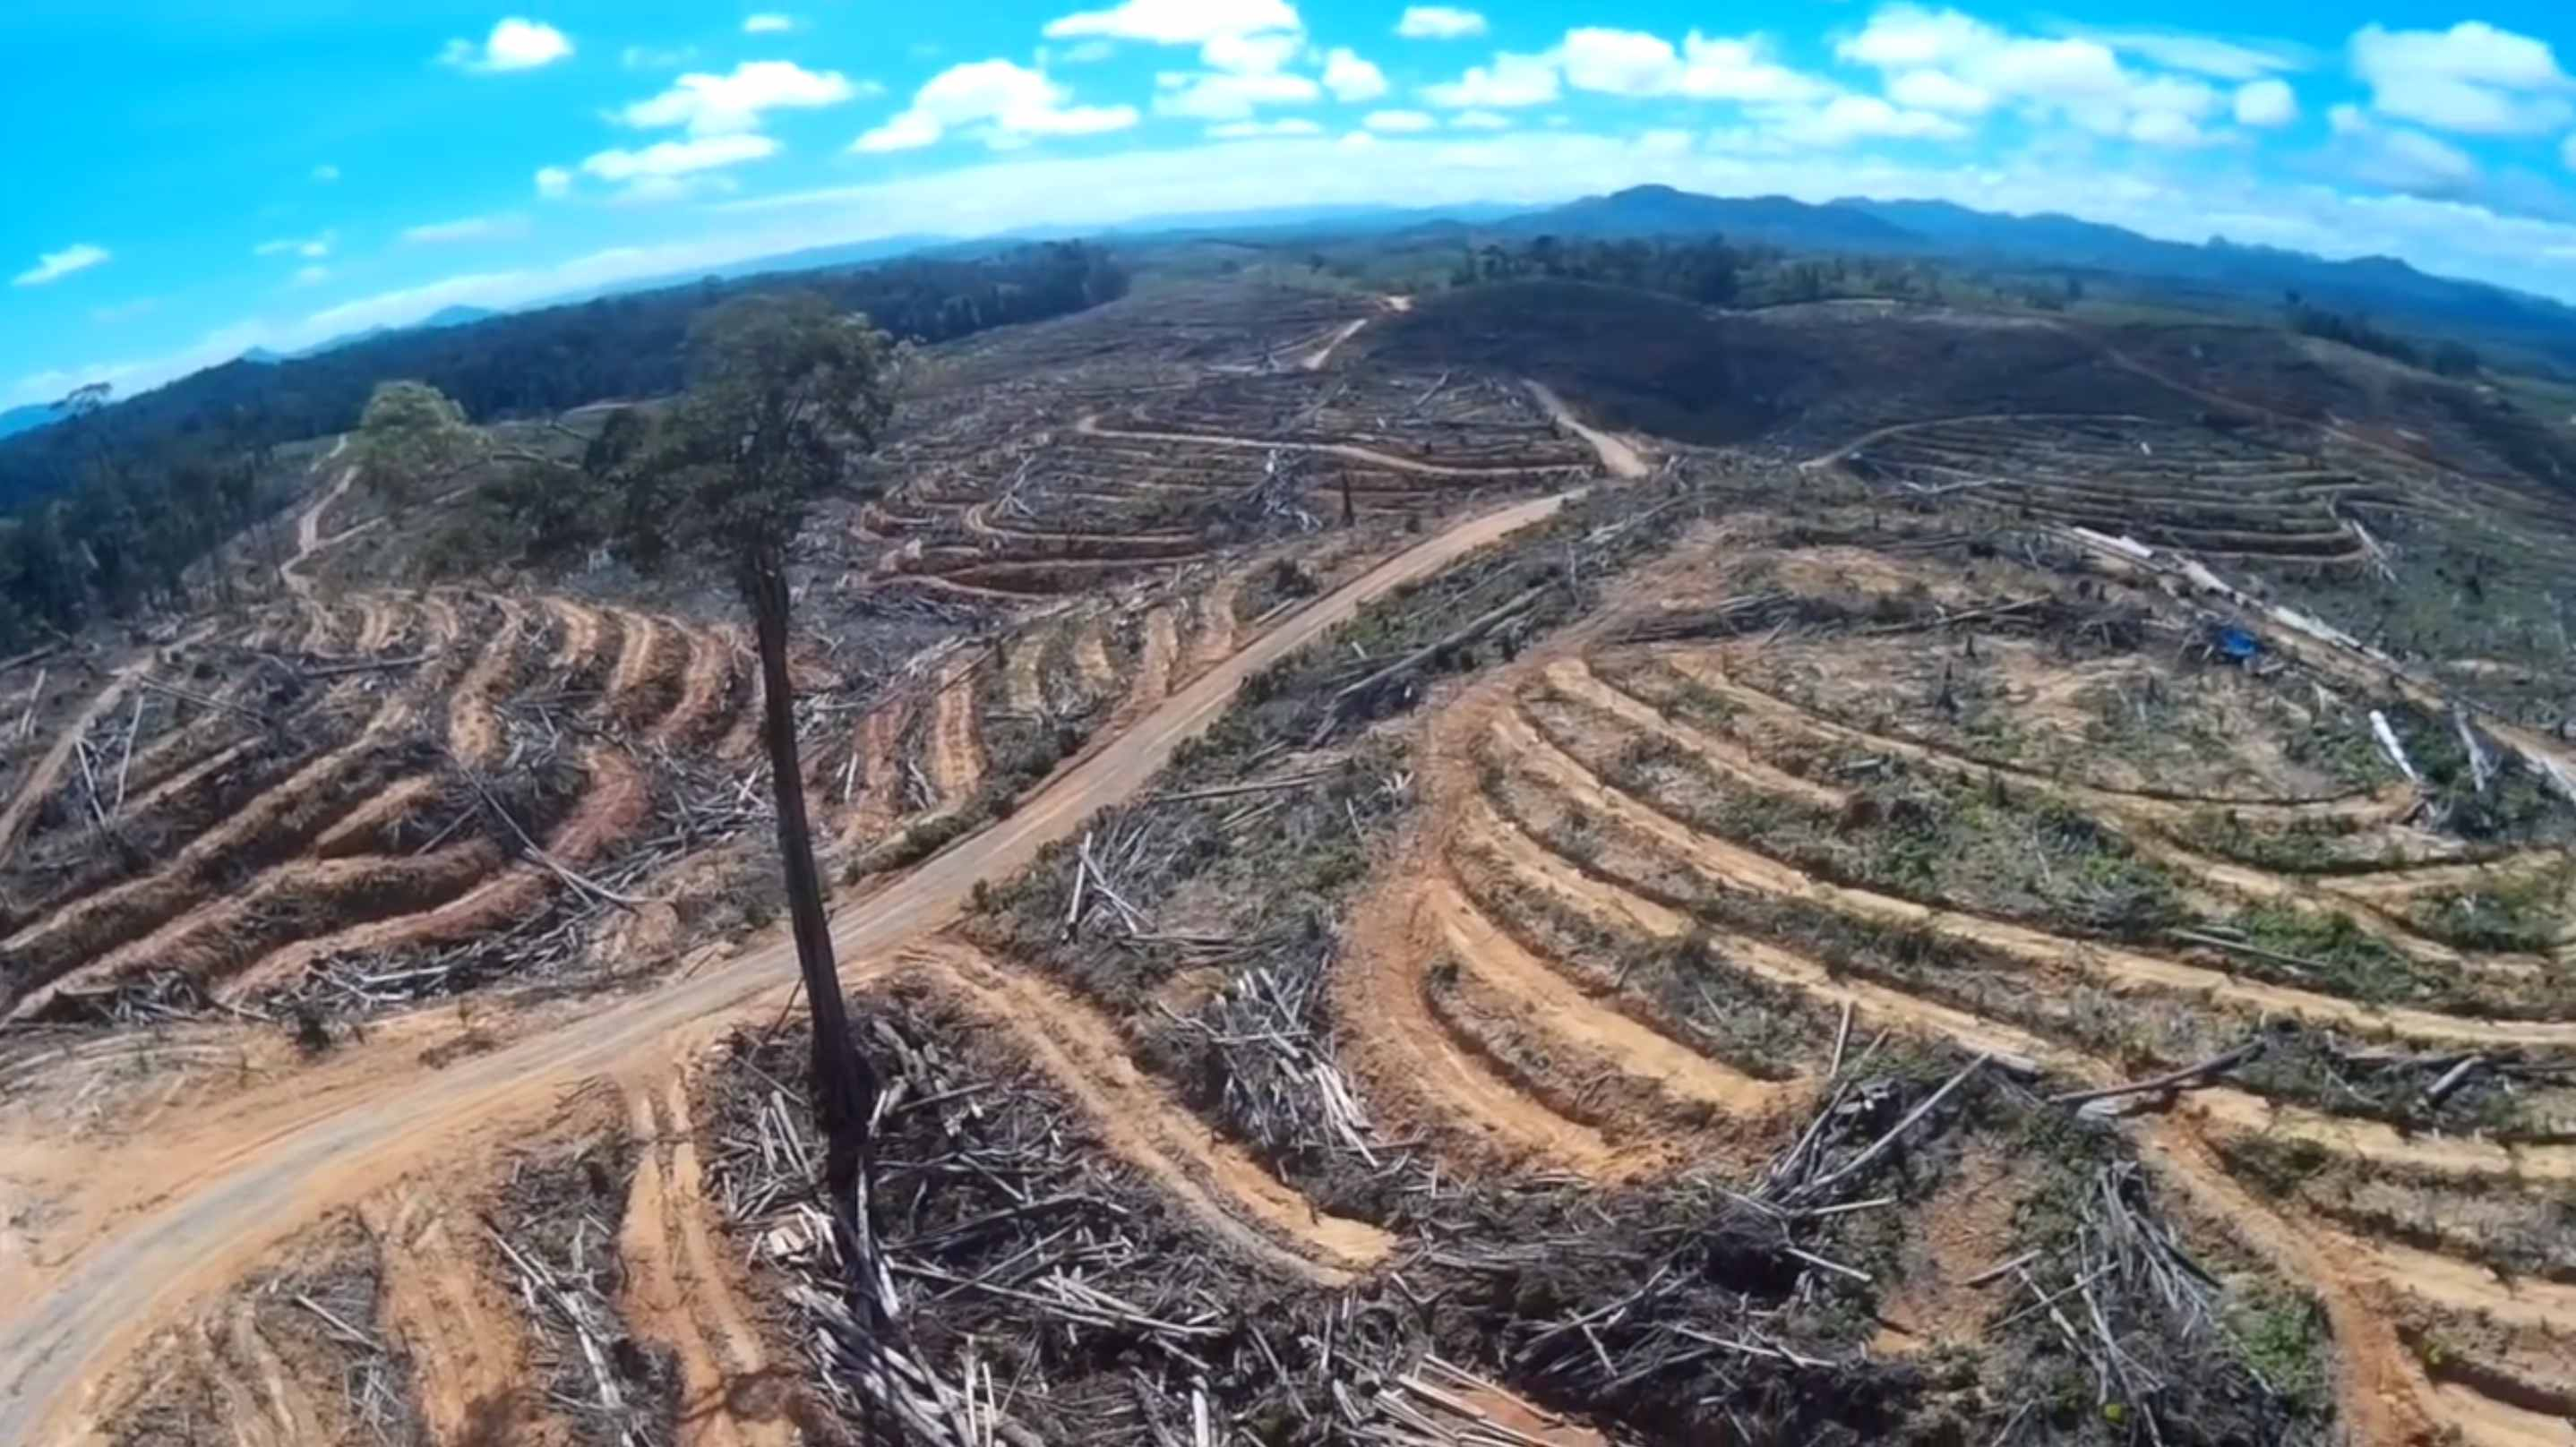 Drone Footage Shows Devastating Scope of Deforestation for Palm Oil in Indonesia